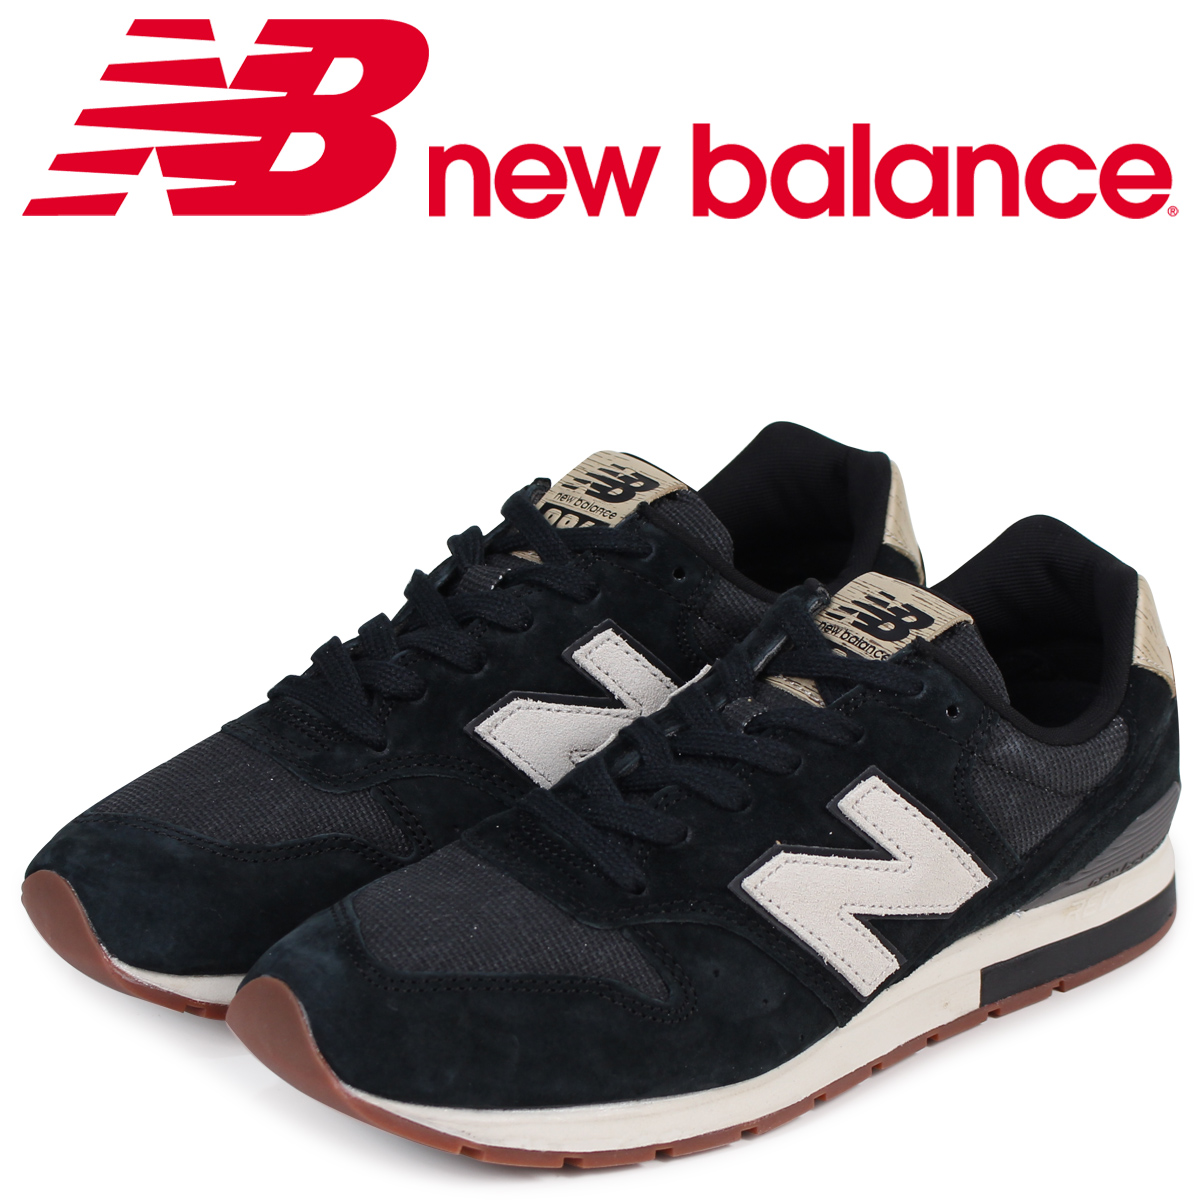 new arrival d2343 8d9ad new balance 996 men's New Balance sneakers MRL996PA D Wise black black